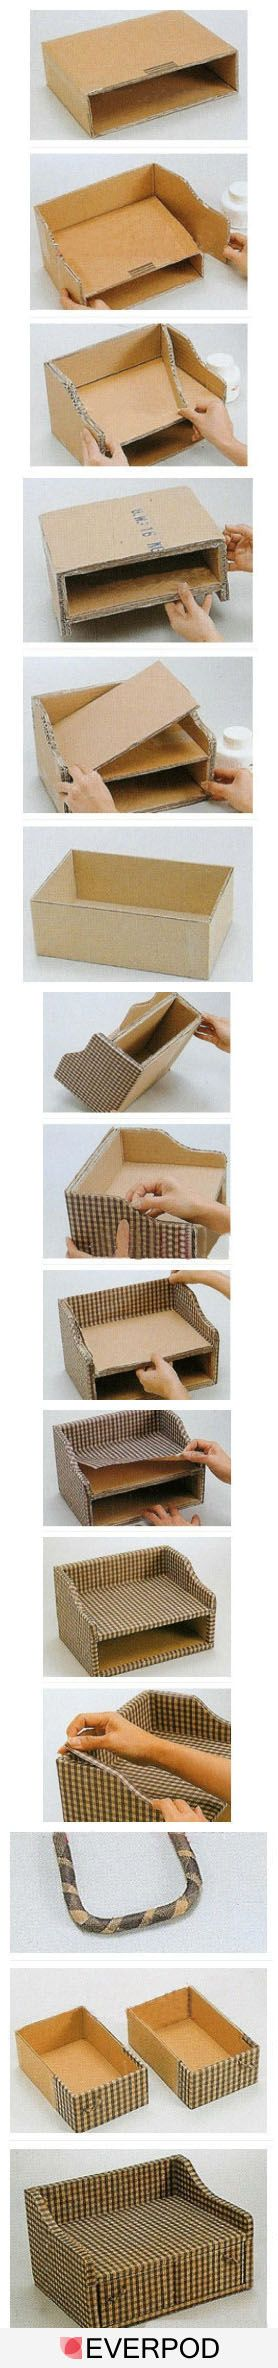 DIY cubicle desk organizer